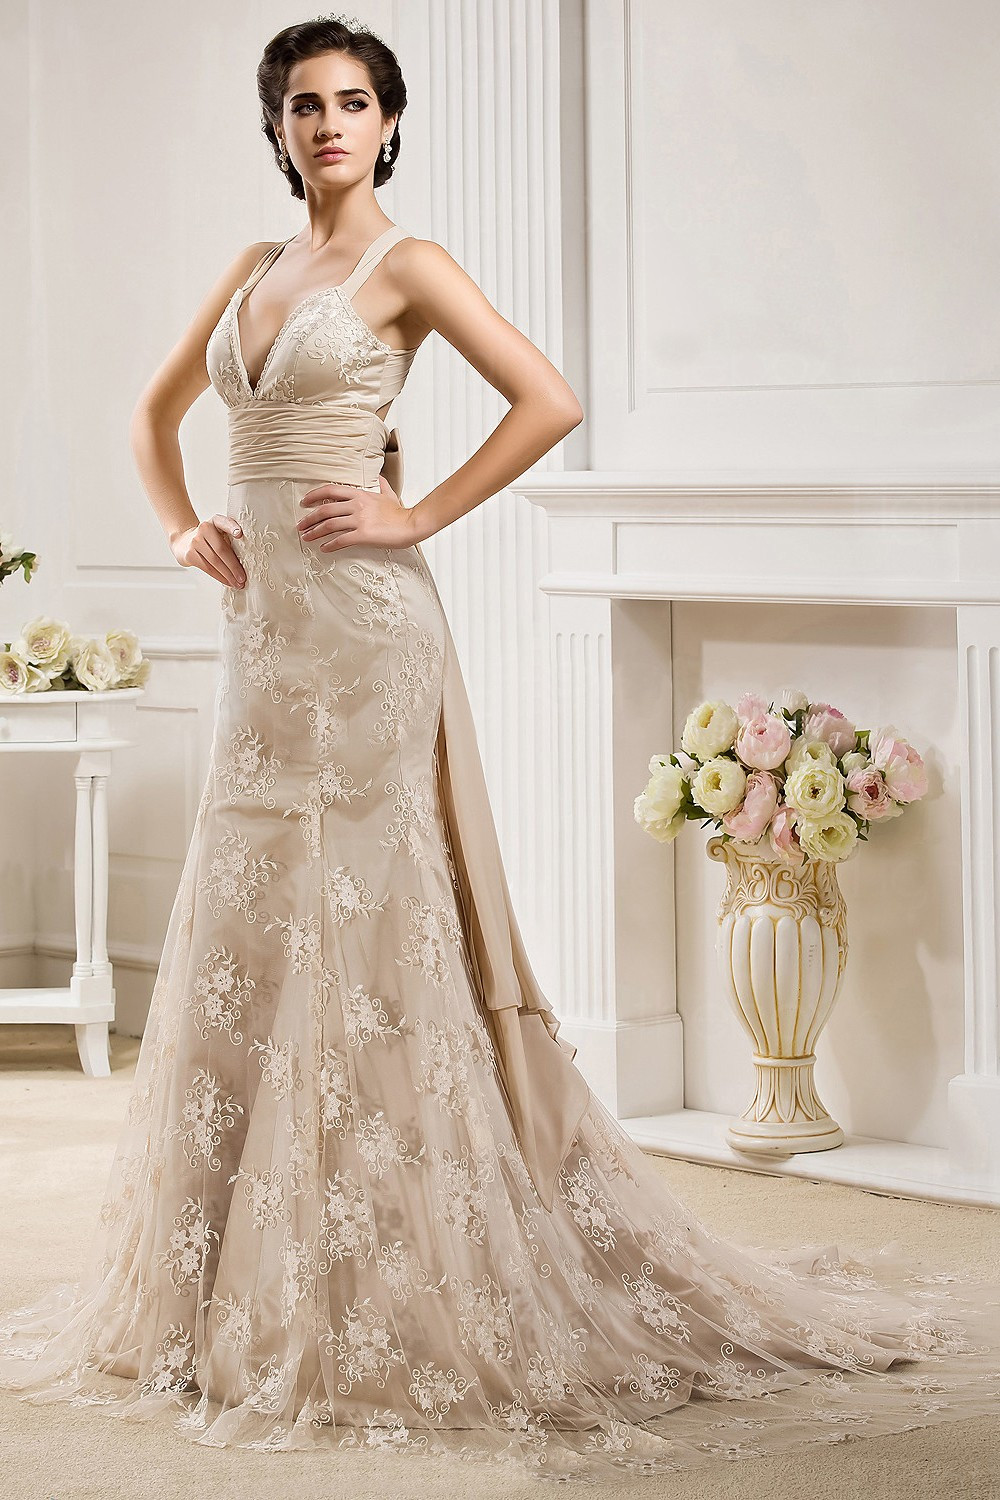 Perfect Beach Wedding Dresses – I Love Being a Lady